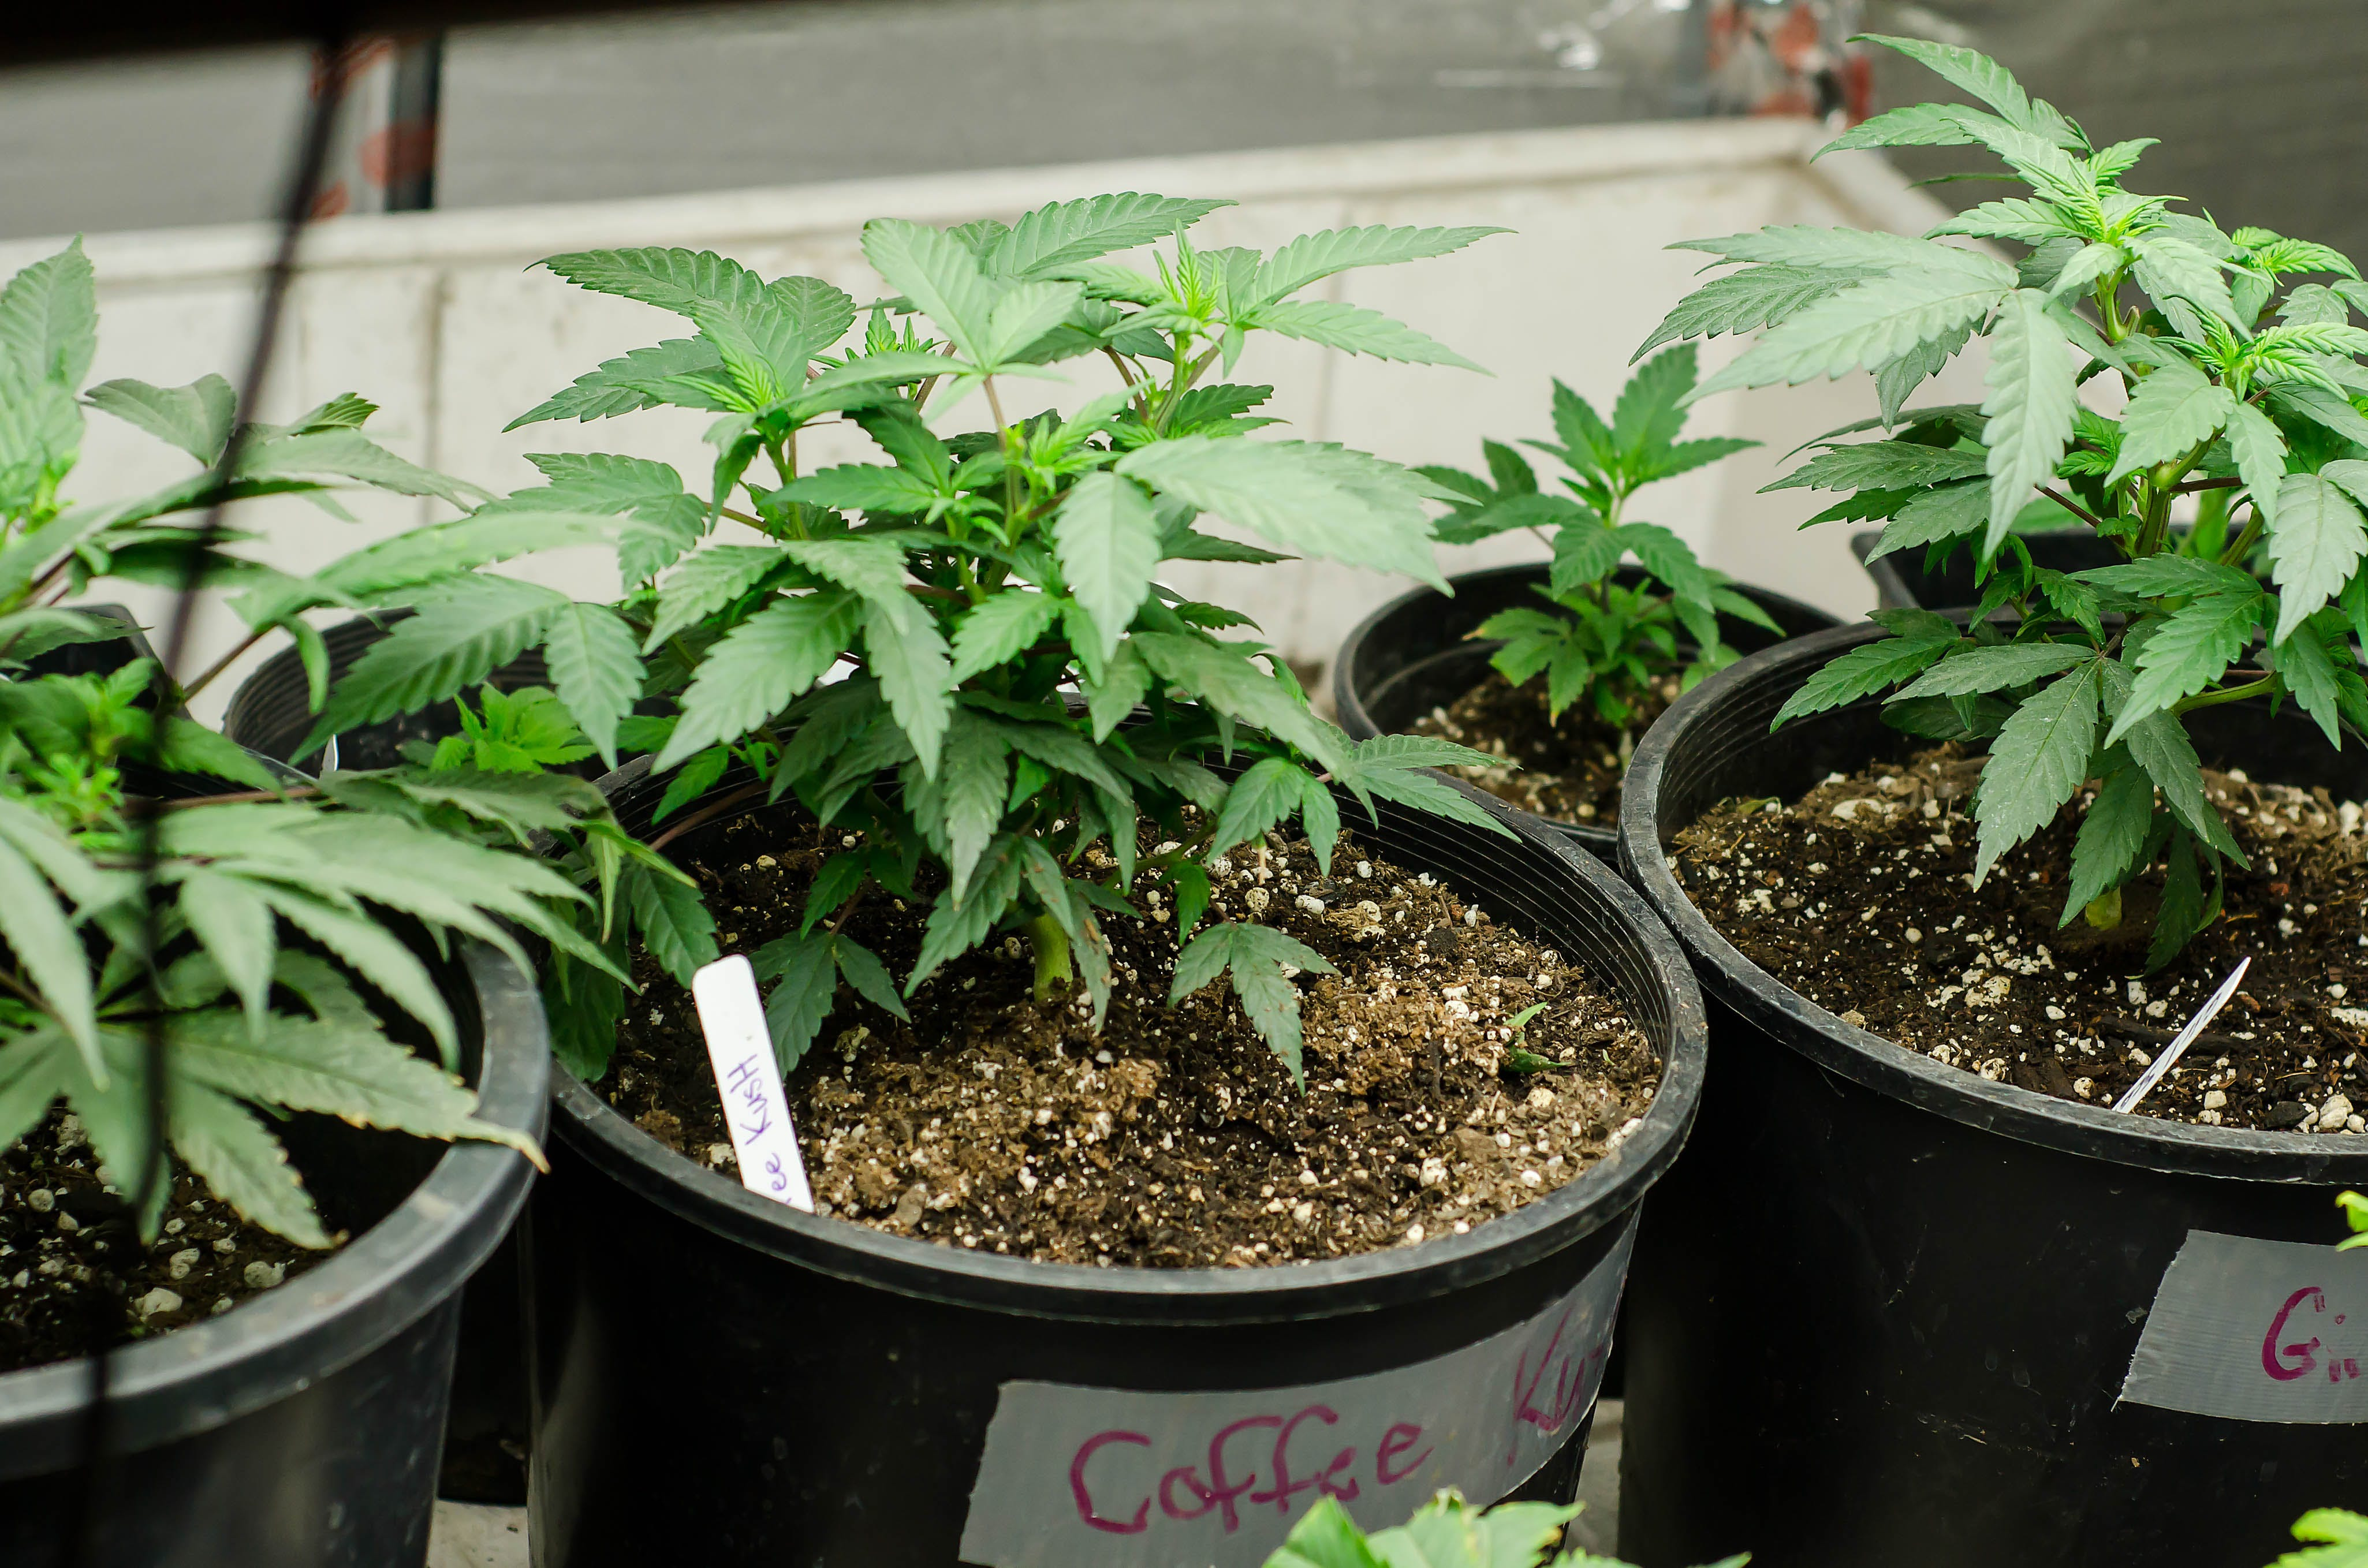 12160781894 117ecde17a o Cannabis Cafes In Paris Are Trying To Claim The Bud They Sell Isnt For Smoking